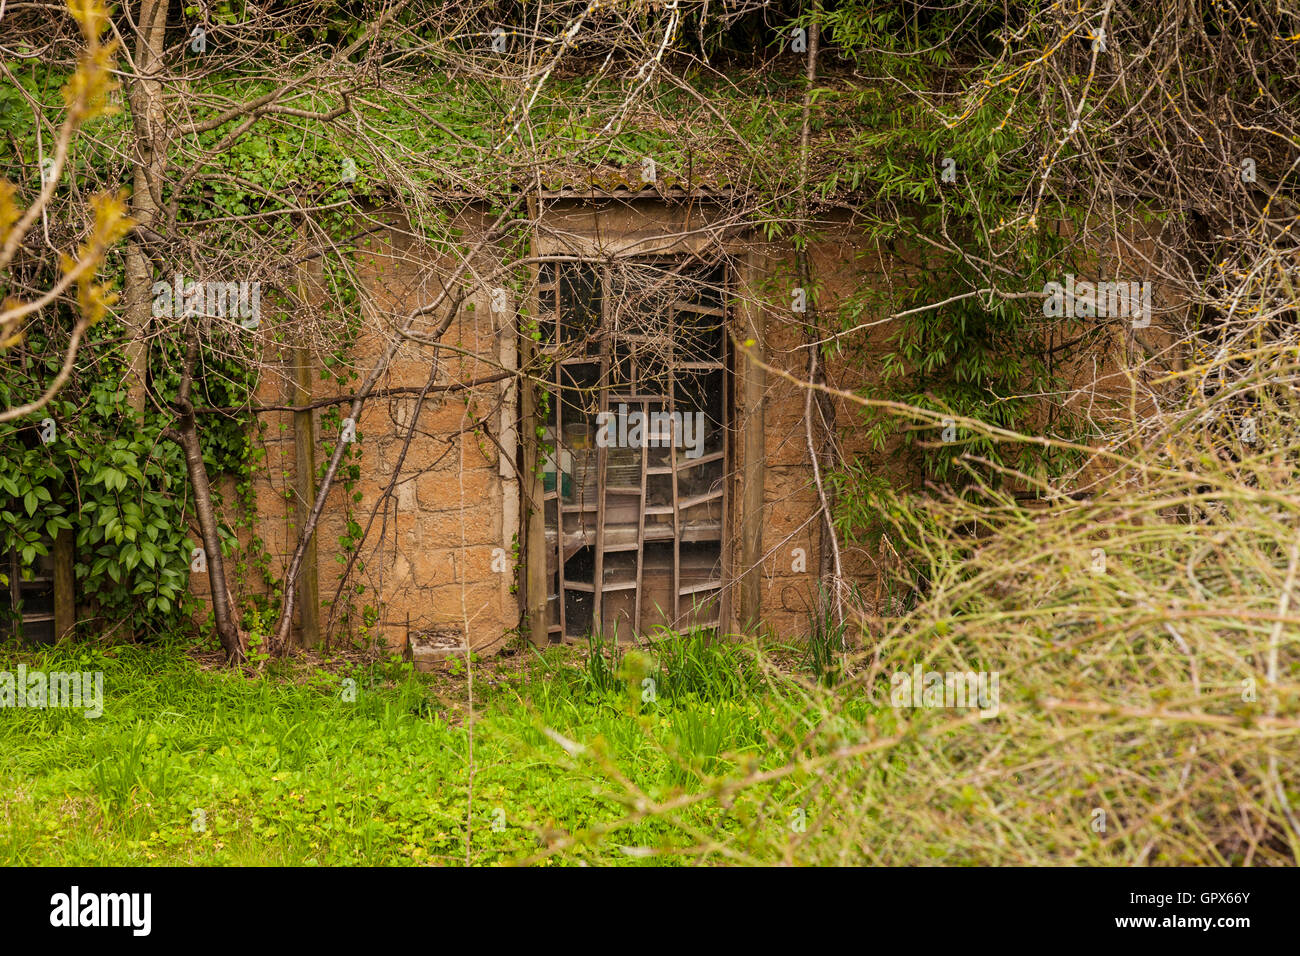 Hand built artists studio in the bottom of a gully covered with overgrown shrubs, long grass, artistic glass paneled - Stock Image